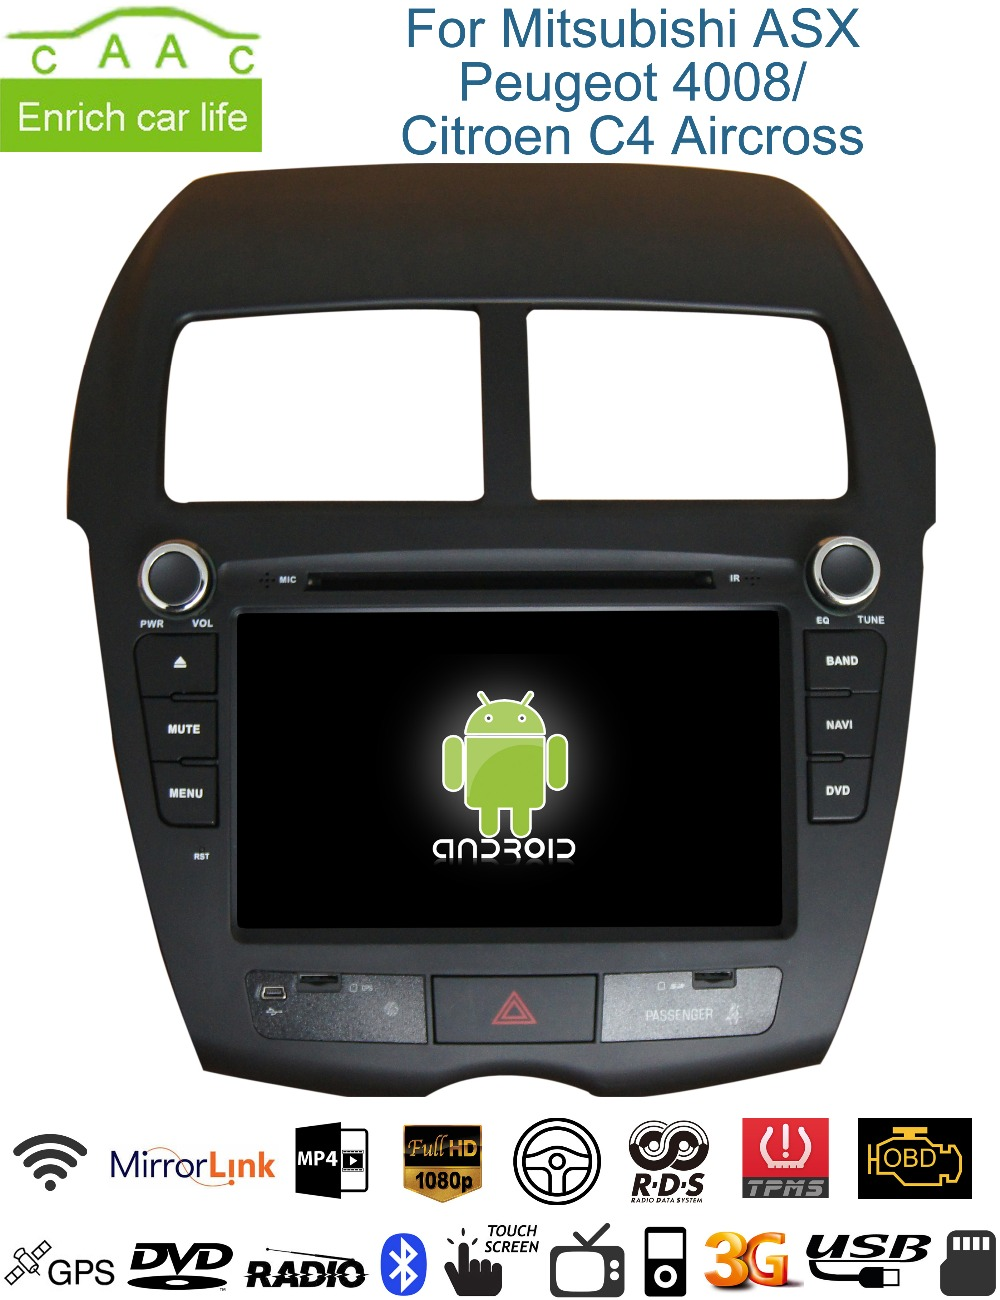 Android GPS Navigation 8 inch Car DVD Player Mitsubishi ASX/Citroen C-Aircross/Peugeot 4008 BT/RDS/SWC/Canbus/Mirrorlink - China Auto Accessories' Club store